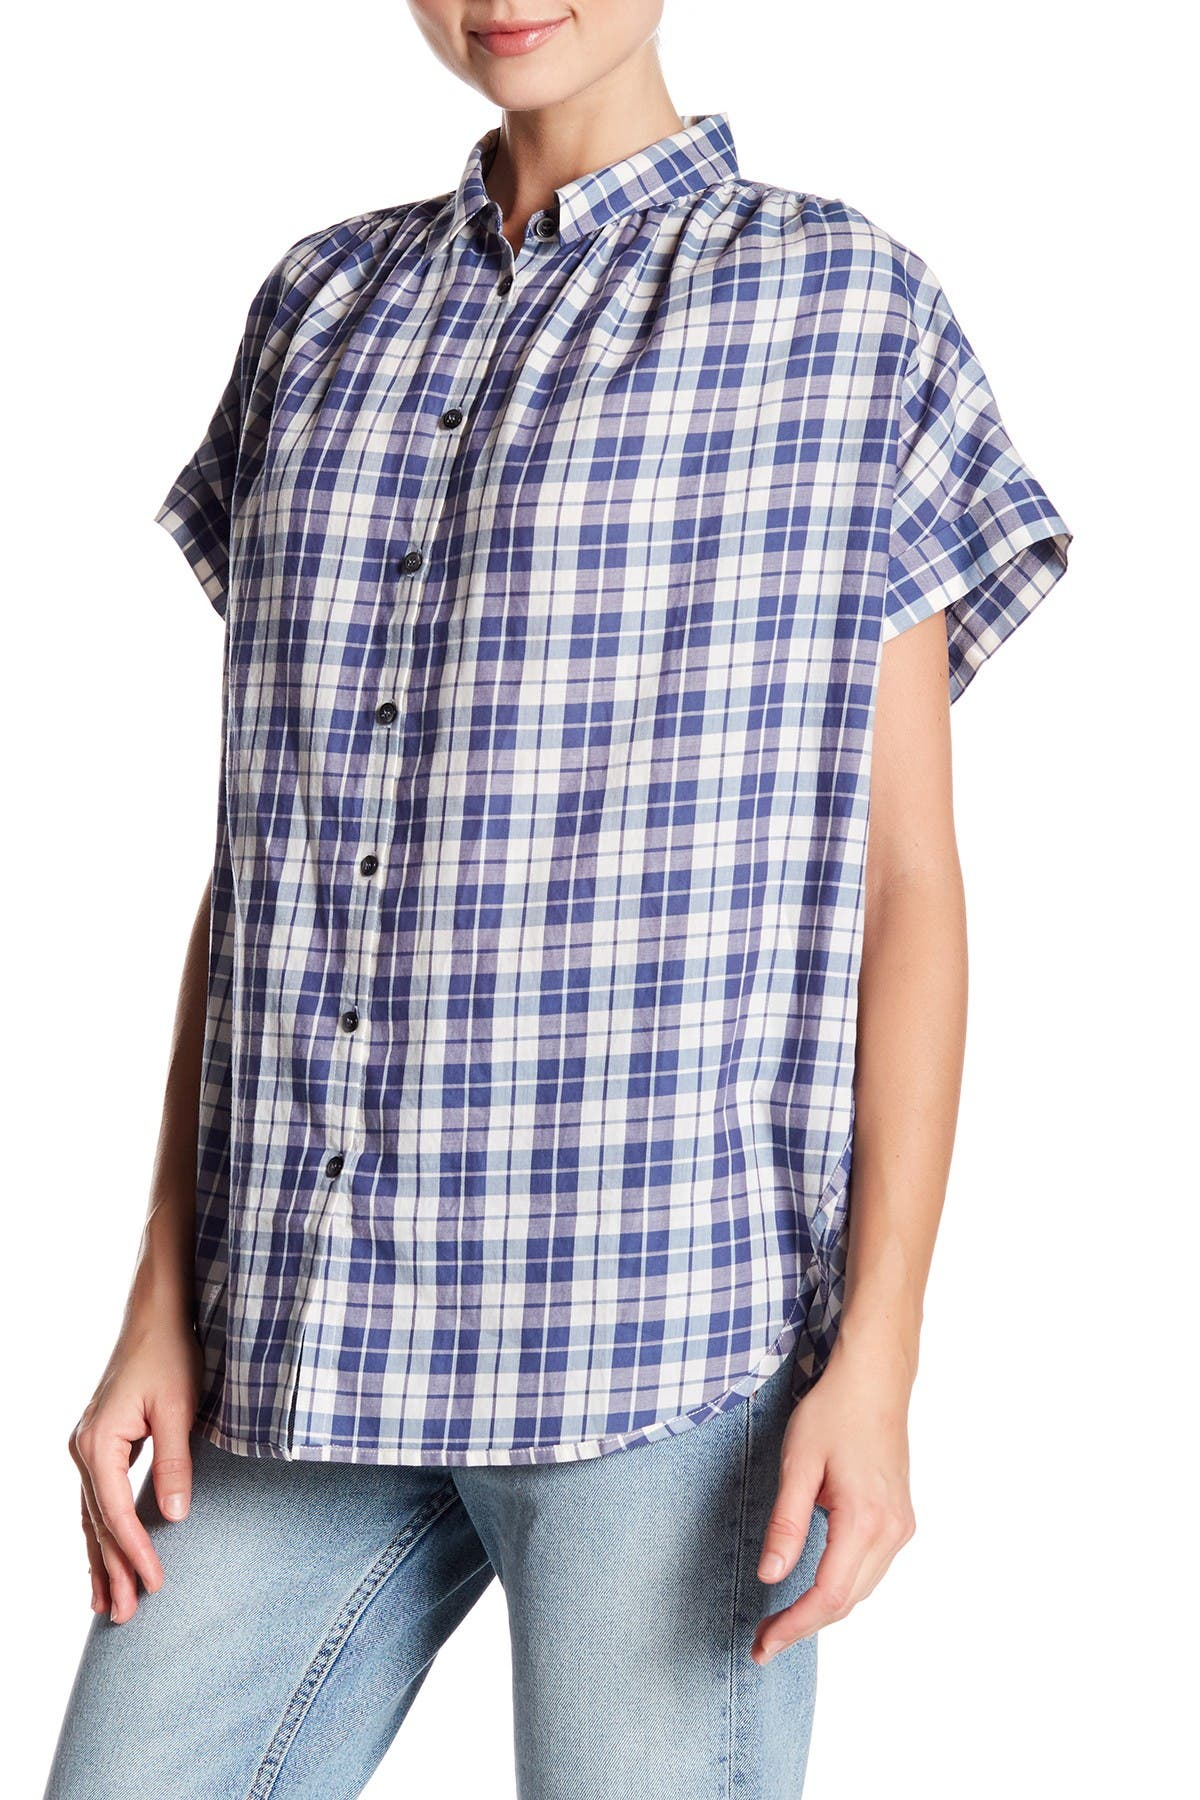 Image of Madewell Central Linus Plaid Shirt